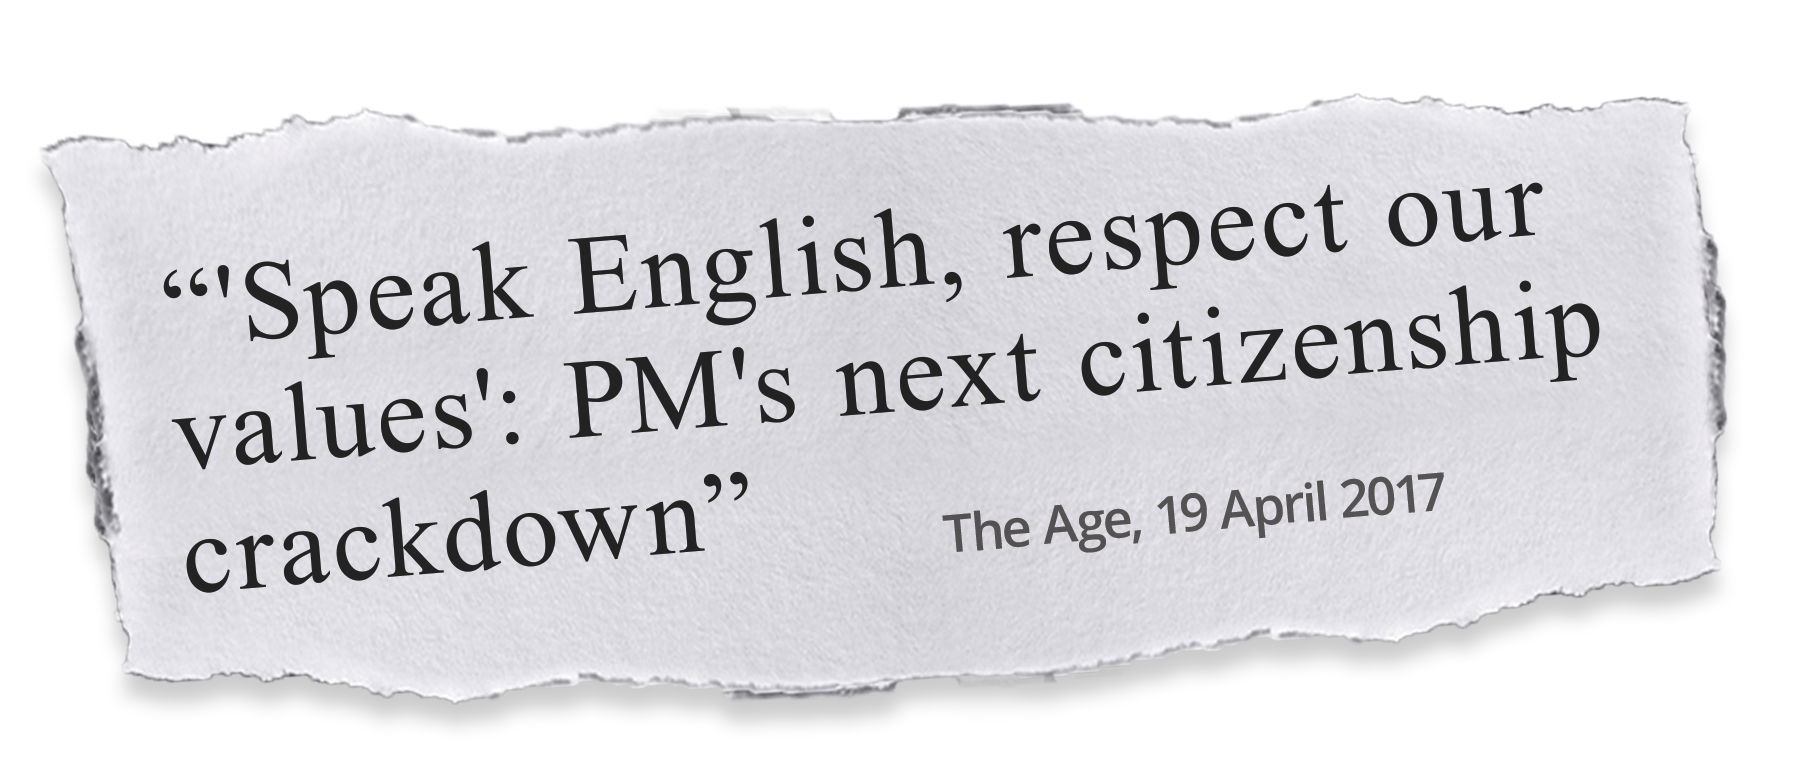 Tear-of of a newspaper headline, which reads 'Speak English, respect our values': PM's next citizenship crackdown - The Age, April 19 2017